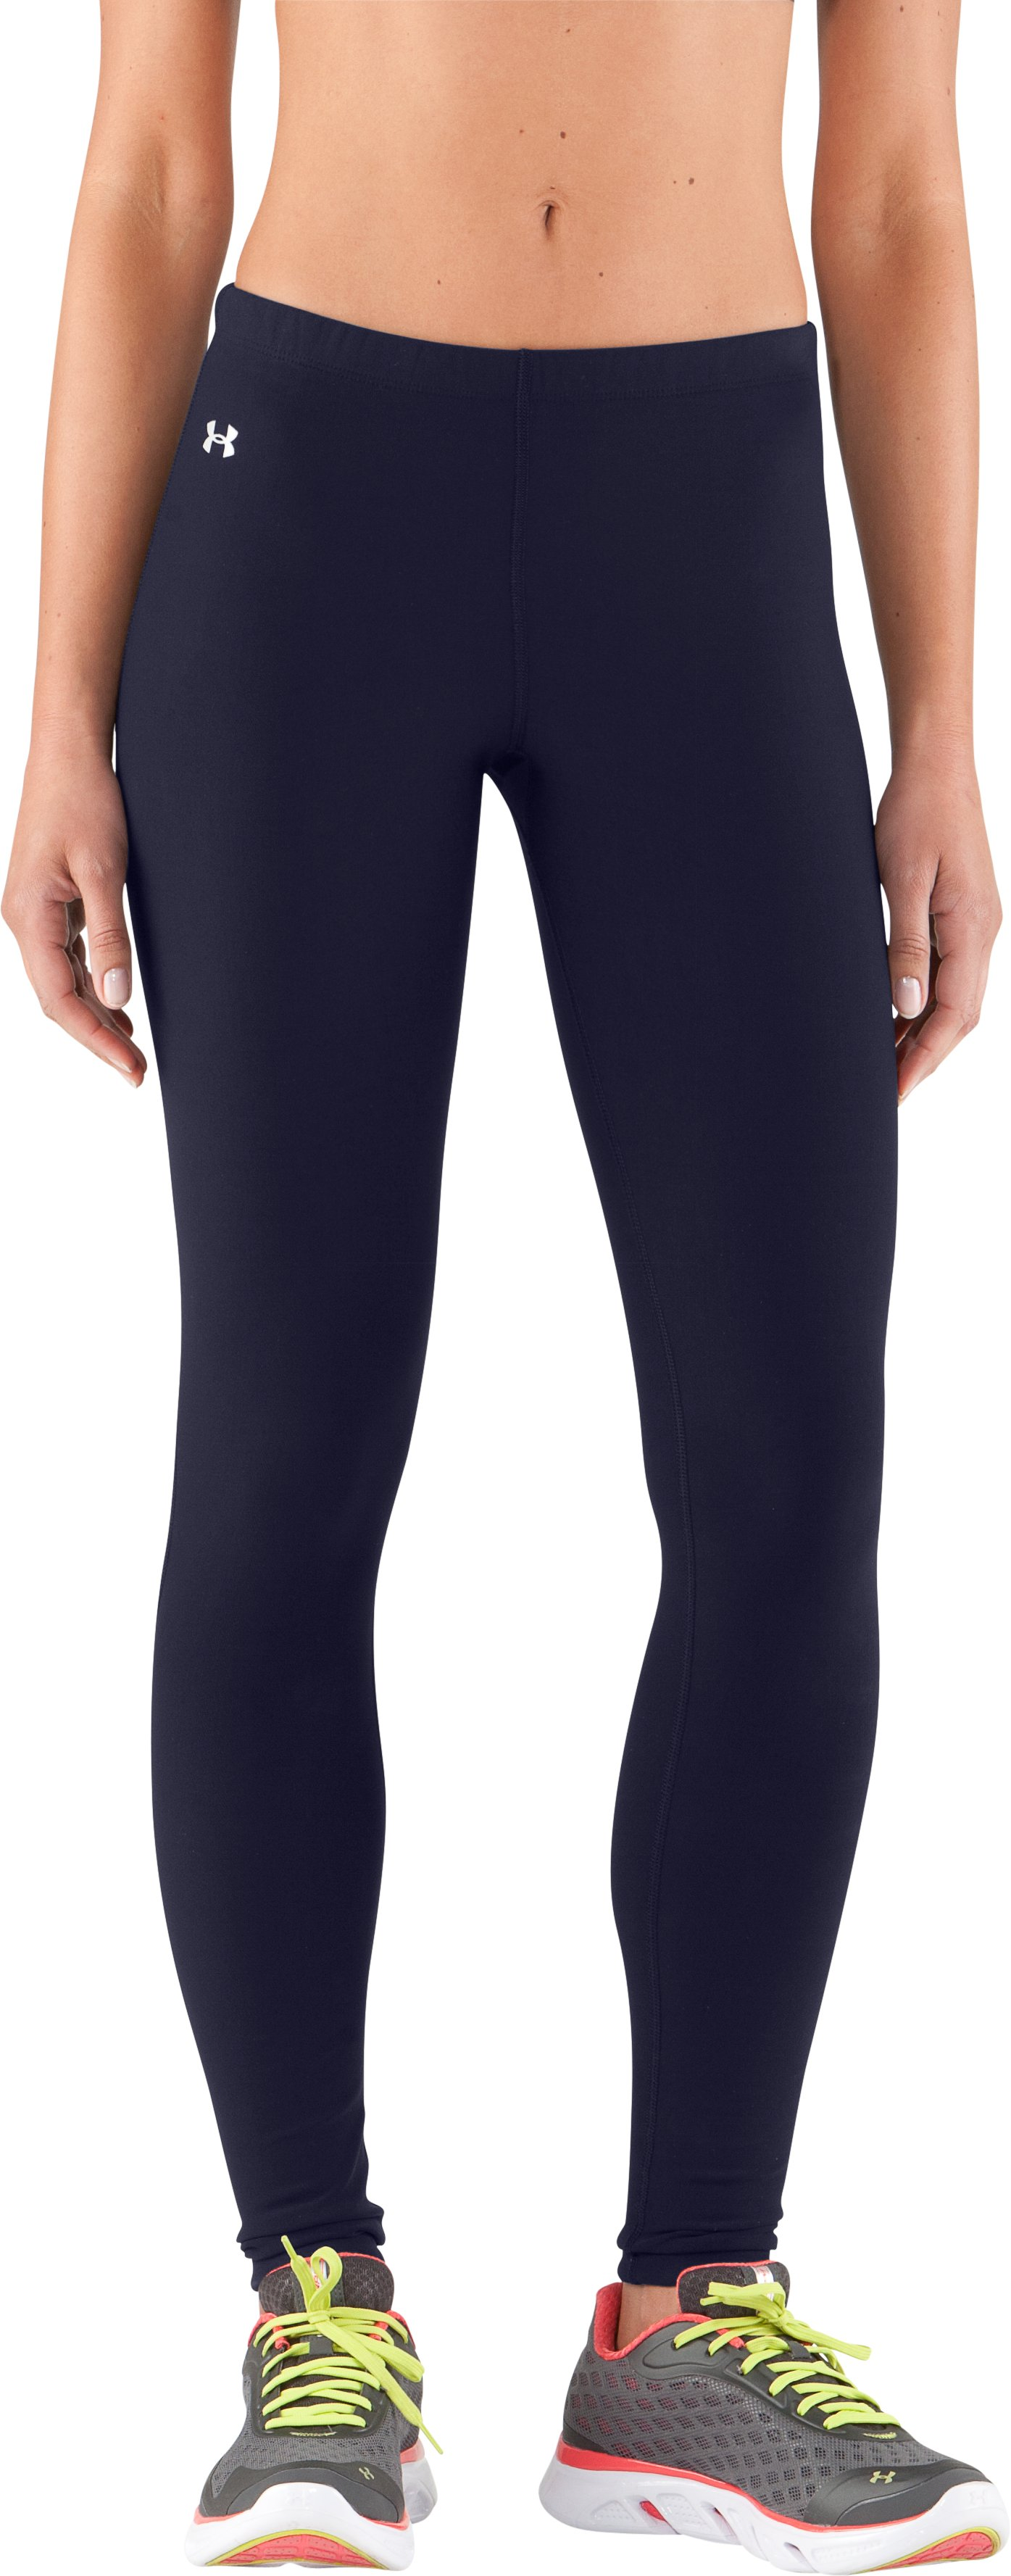 Women's ColdGear® Frosty Compression Tights, Midnight Navy